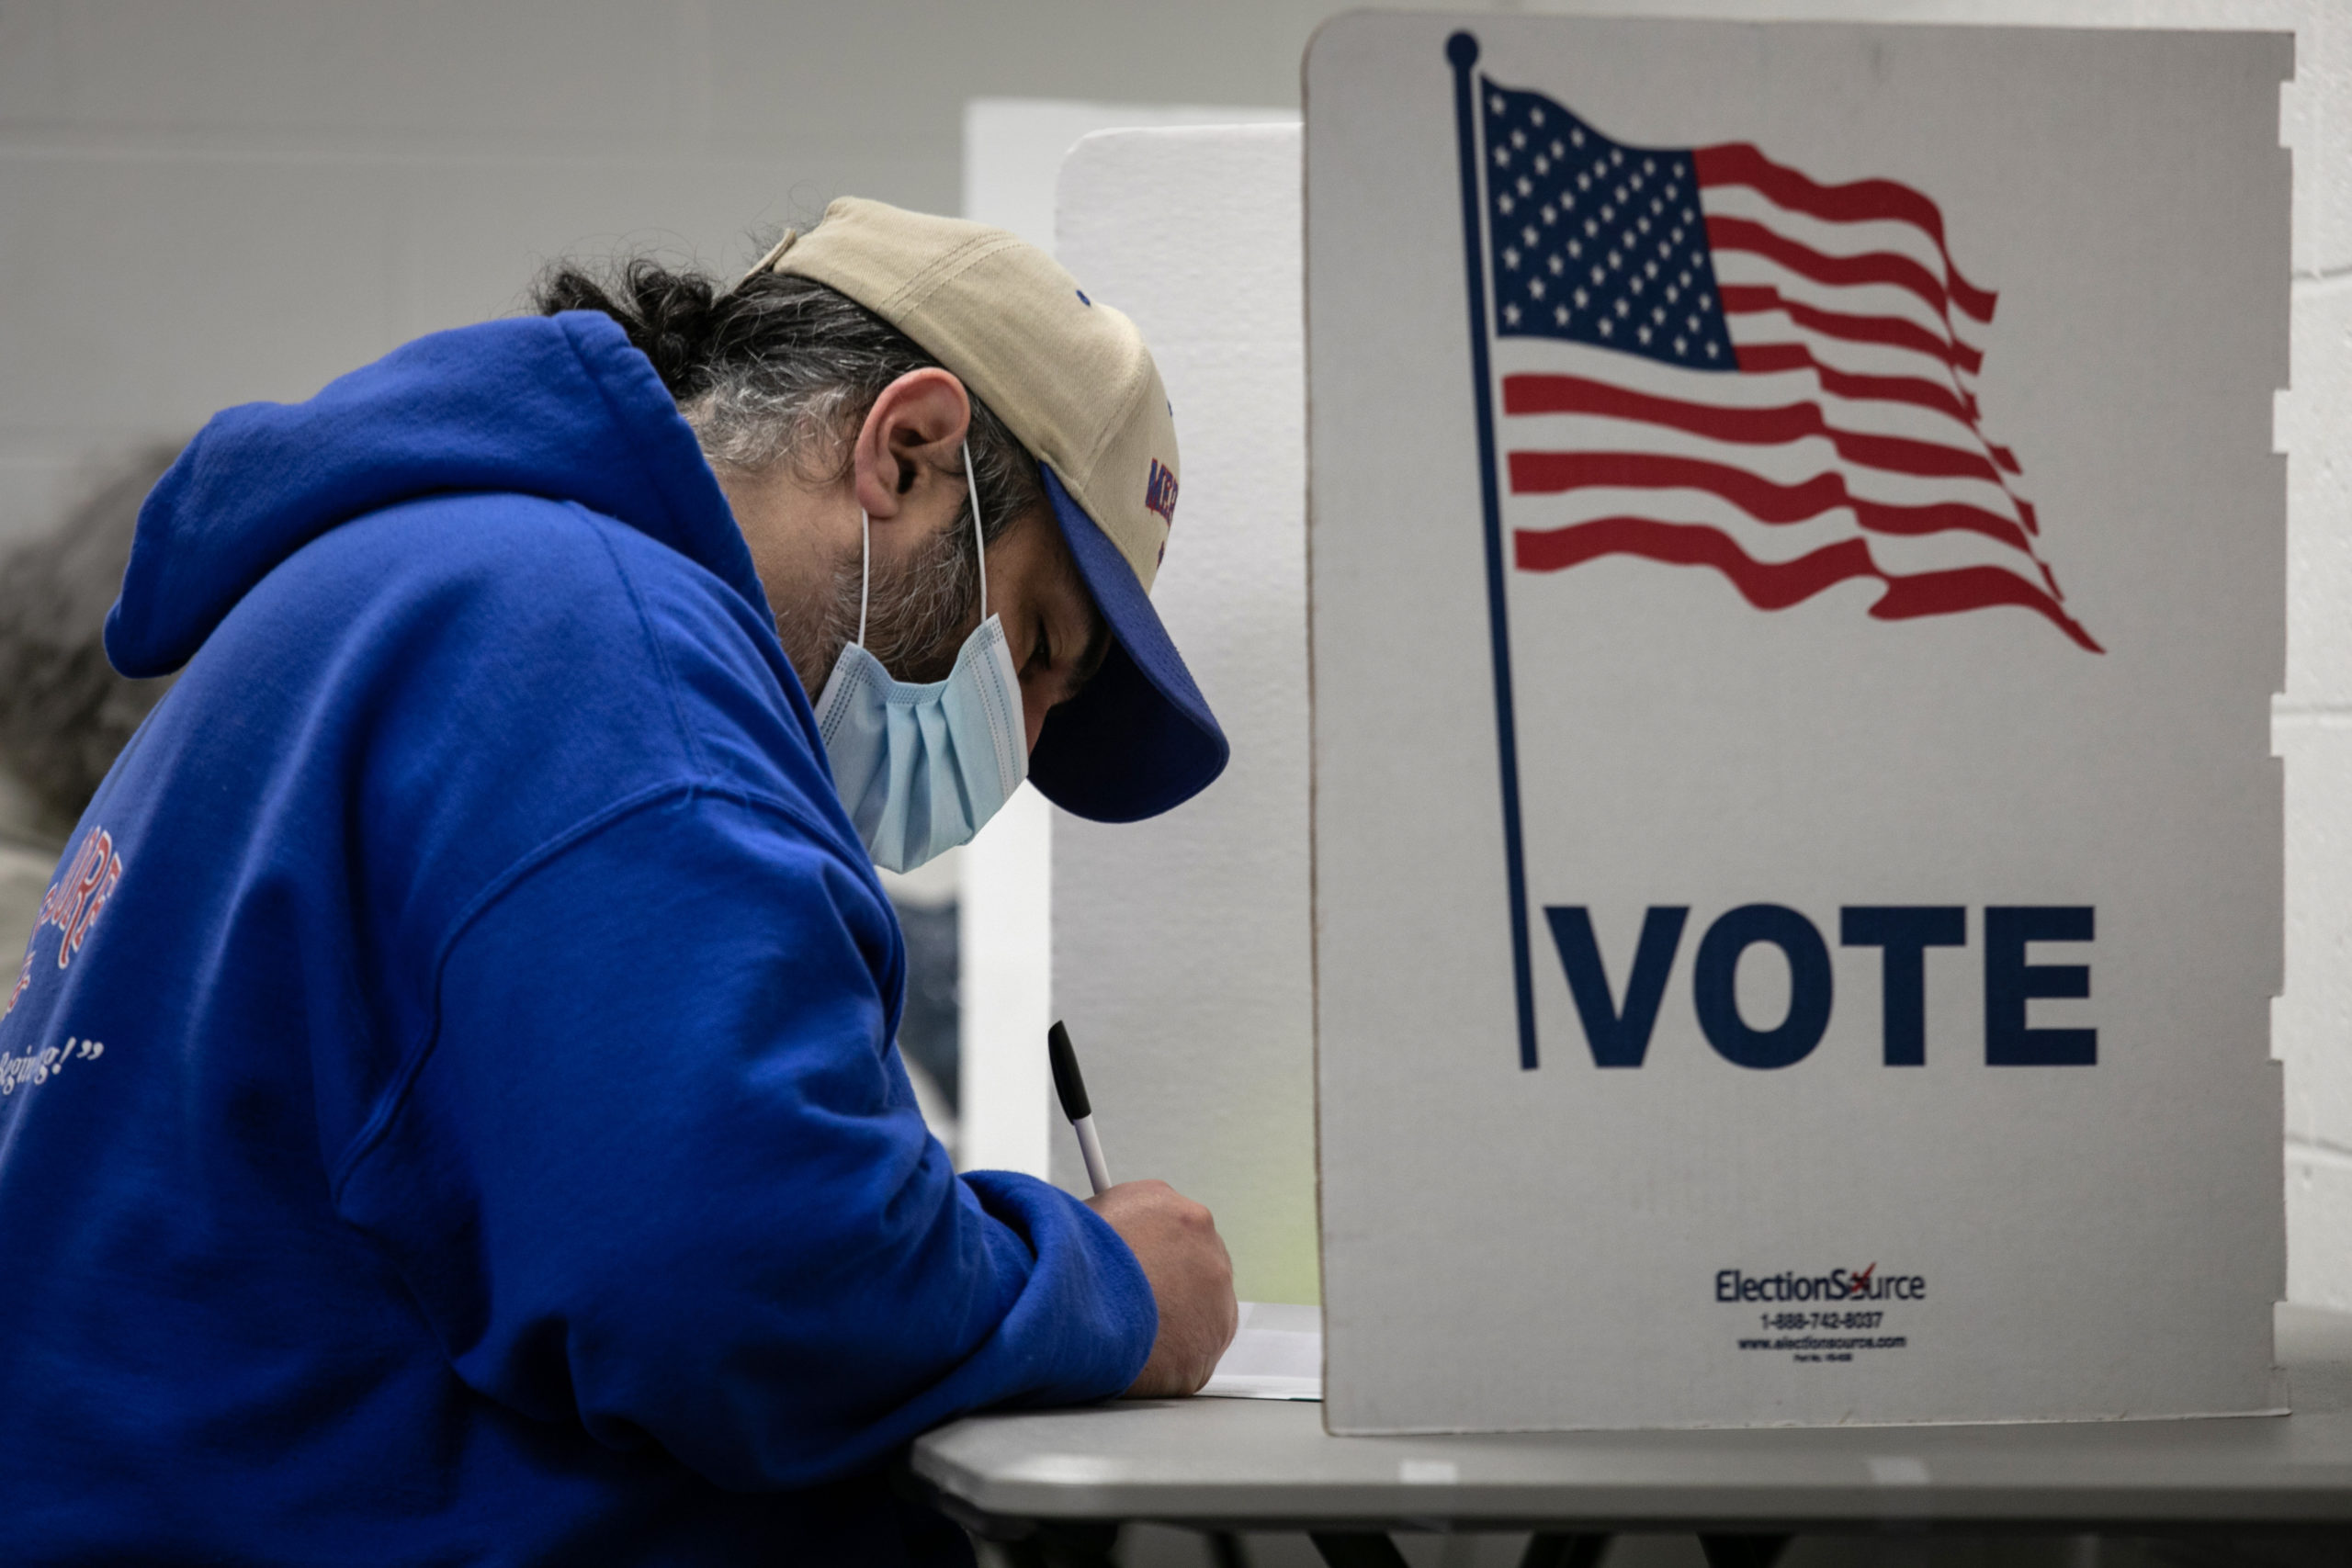 LANSING, MICHIGAN - NOVEMBER 02: A voter fills out his ballot on the last day of early voting at the Lansing City Clerk's office on November 02, 2020 in Lansing, Michigan. In 2016 U.S. President Donald Trump narrowly won Michigan, which is now a main battleground state. (John Moore/Getty Images)